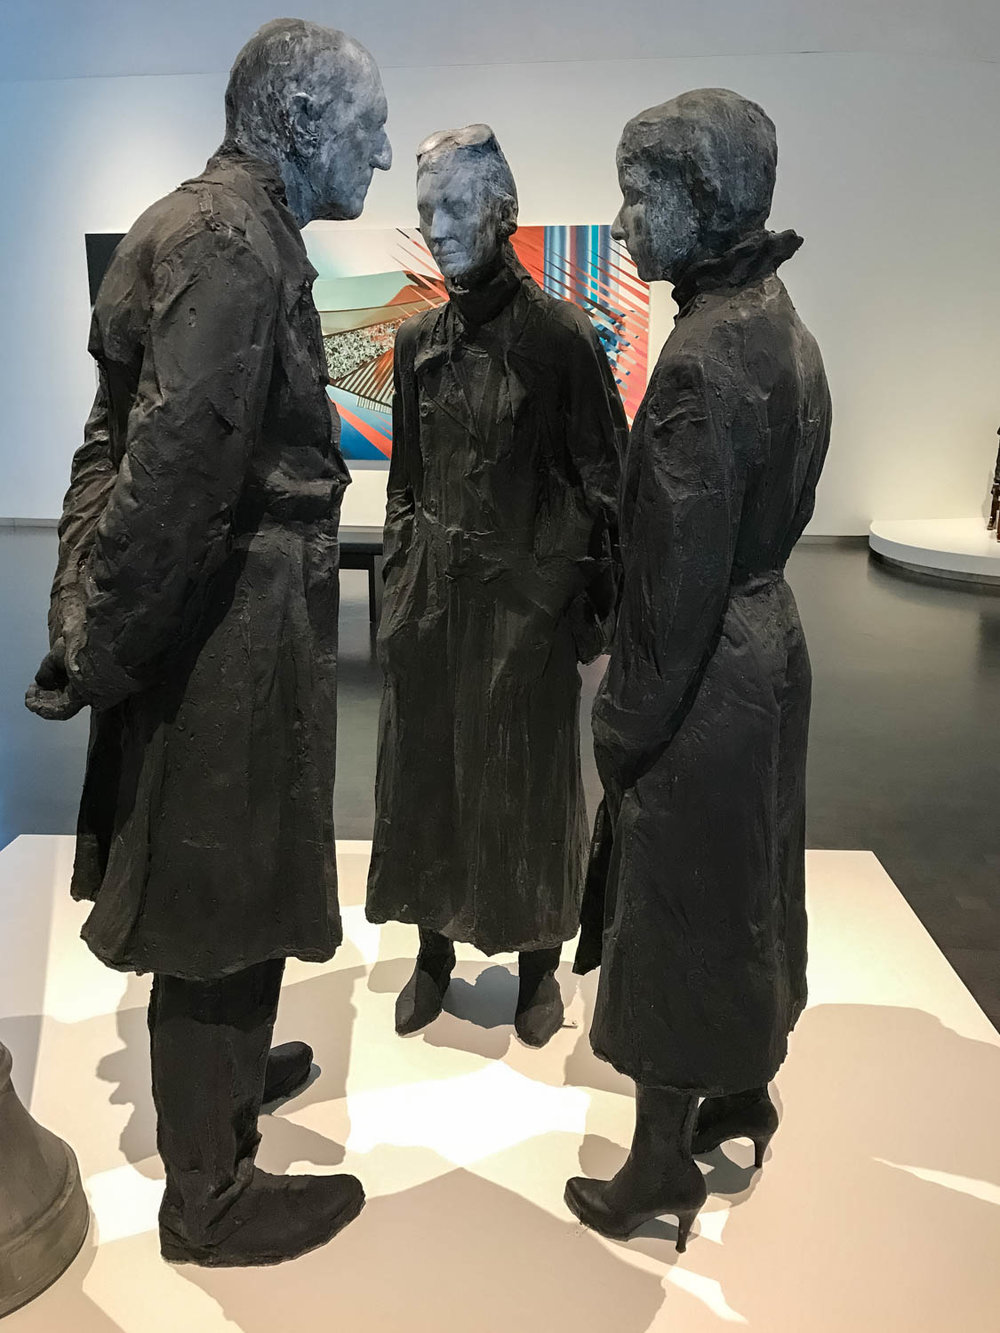 "Chance Meeting,  1989 by George Segal (1924-2000, Plaster, aluminum and galvanized steel.  "" Chance Meeting "" represents one of George Segal's favorite motifs: people on city streets. . . This pose, along with the title, implies that they are friends or acquaintances who have unexpectedly met on the street.  Segal often used family and friends as models.  In  Chance Meeting,  the woman wearing the high heels is the artist's daughter, Rena Segal.  This plaster sculpture, part Pop Art and part Realism, contains details captured by the casting process, including folds in the clothing and even top stitching on seams."""